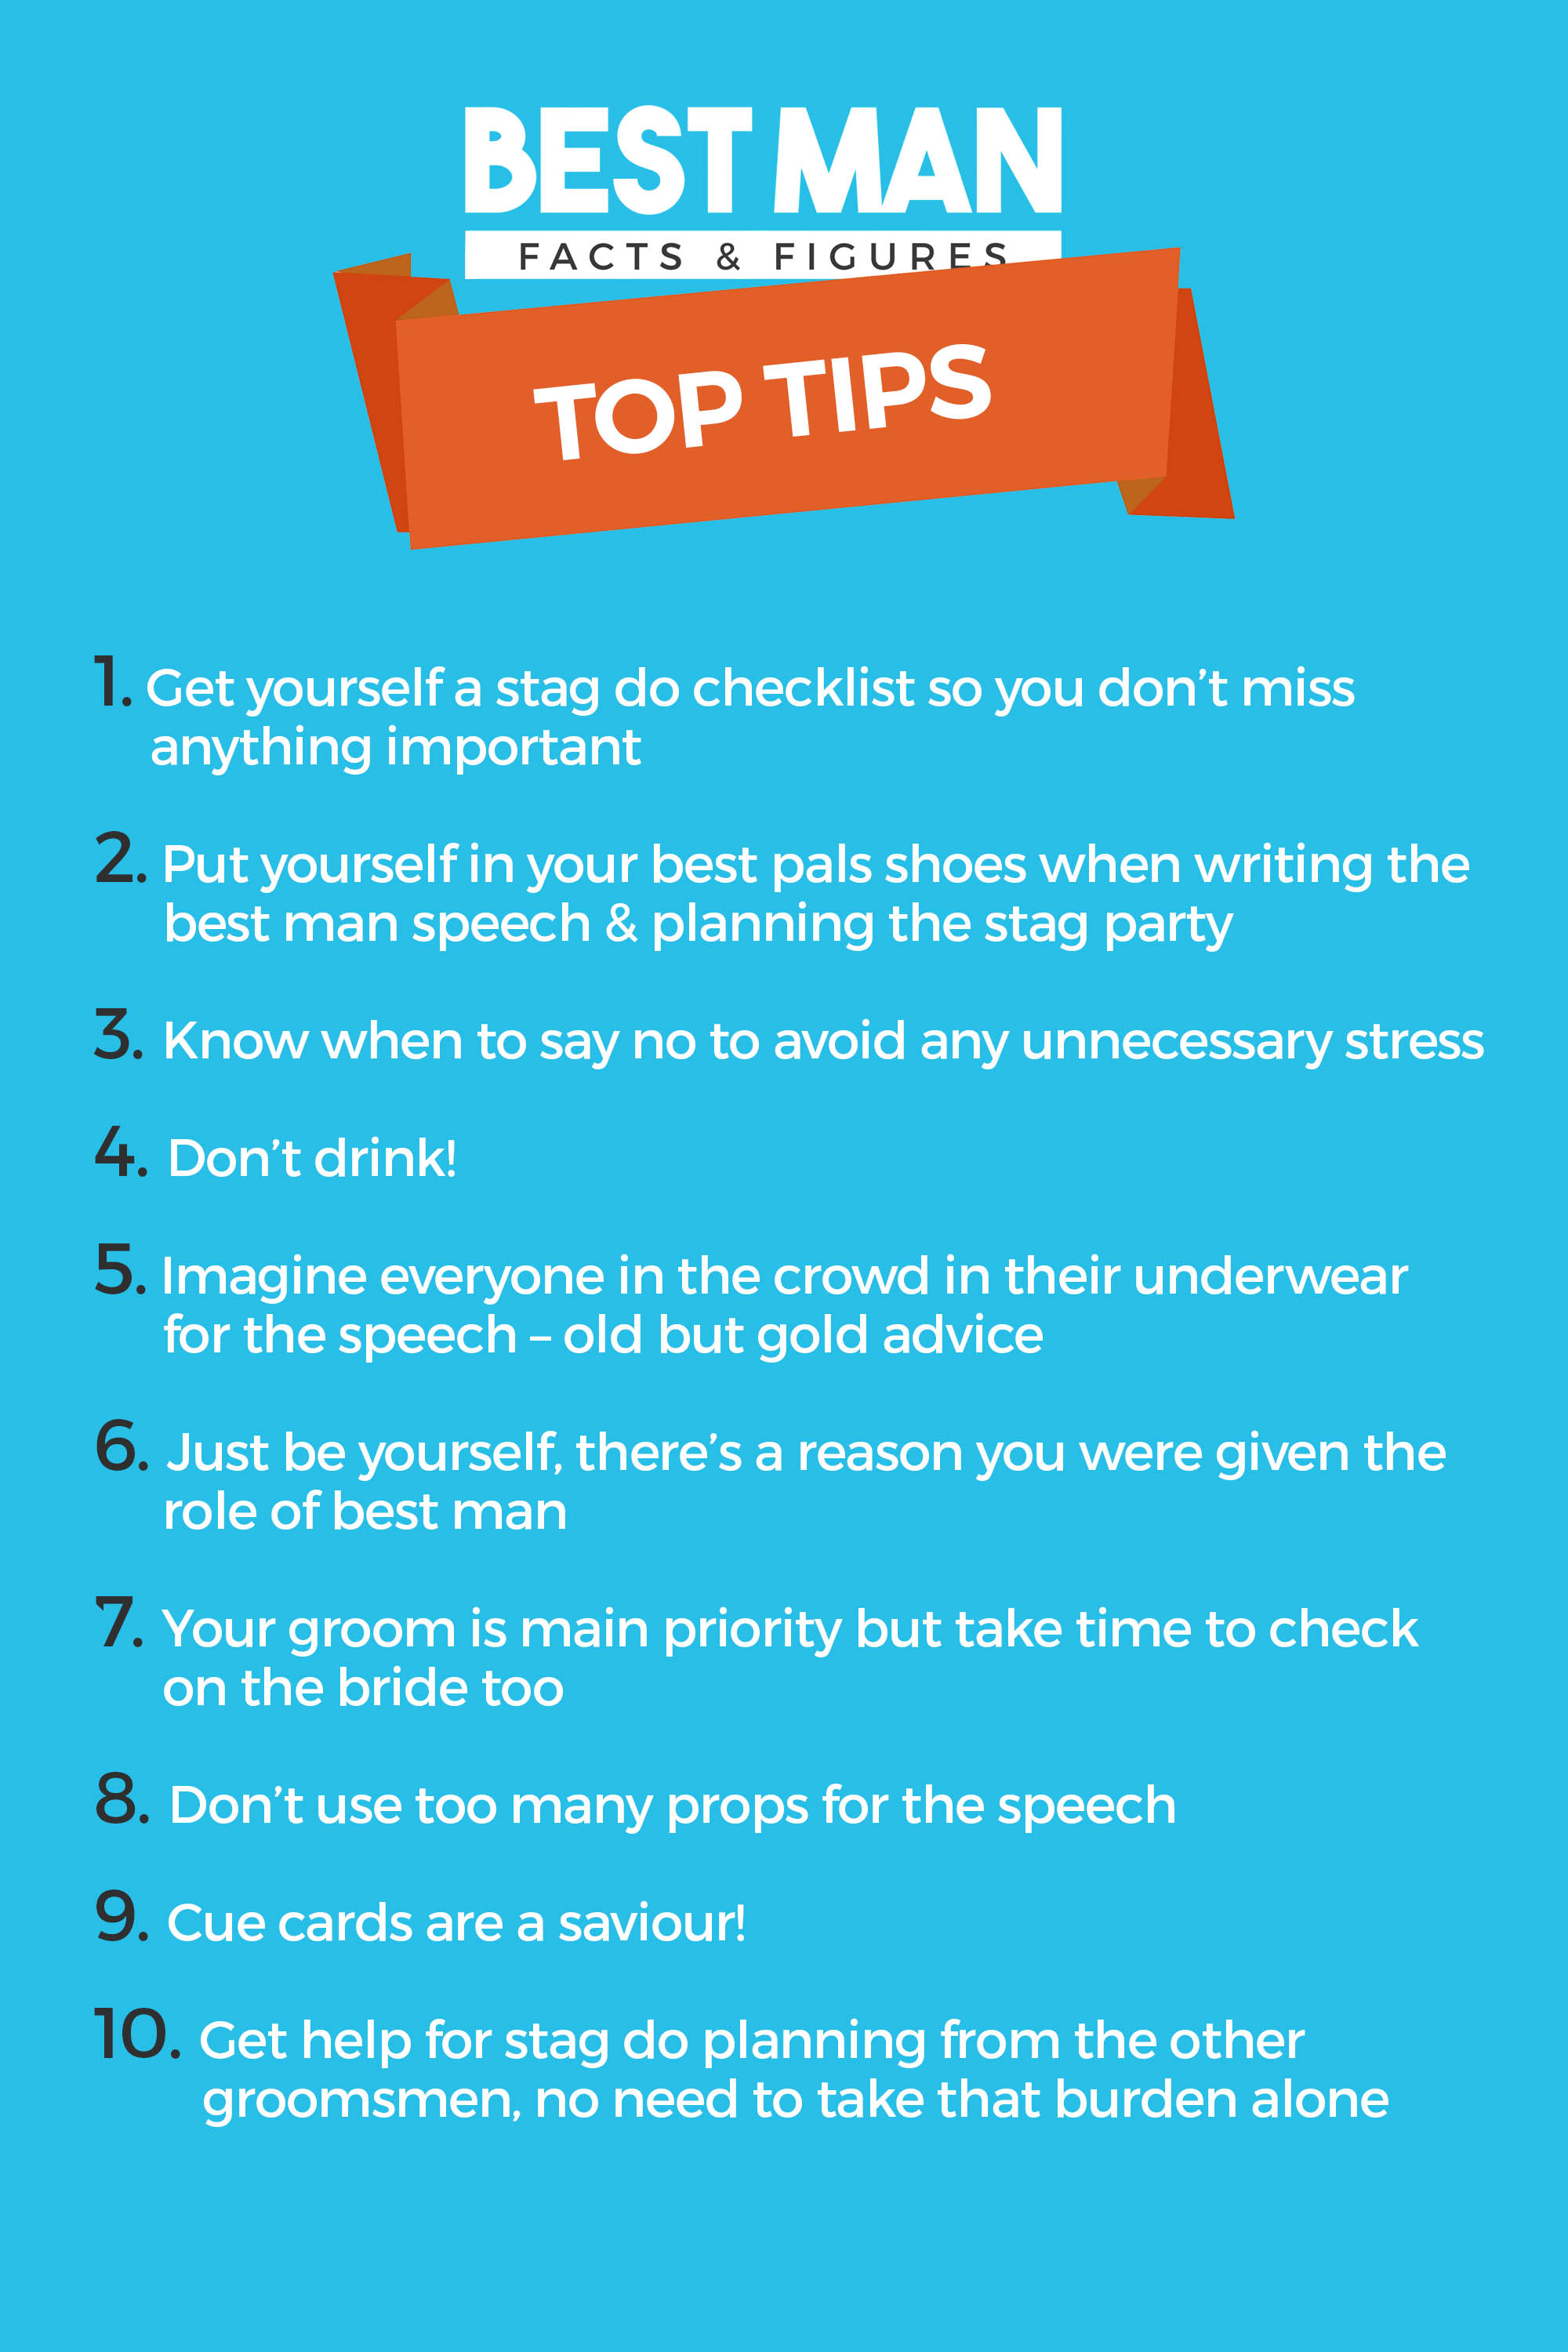 Best Man Facts & Figures - Top Tips